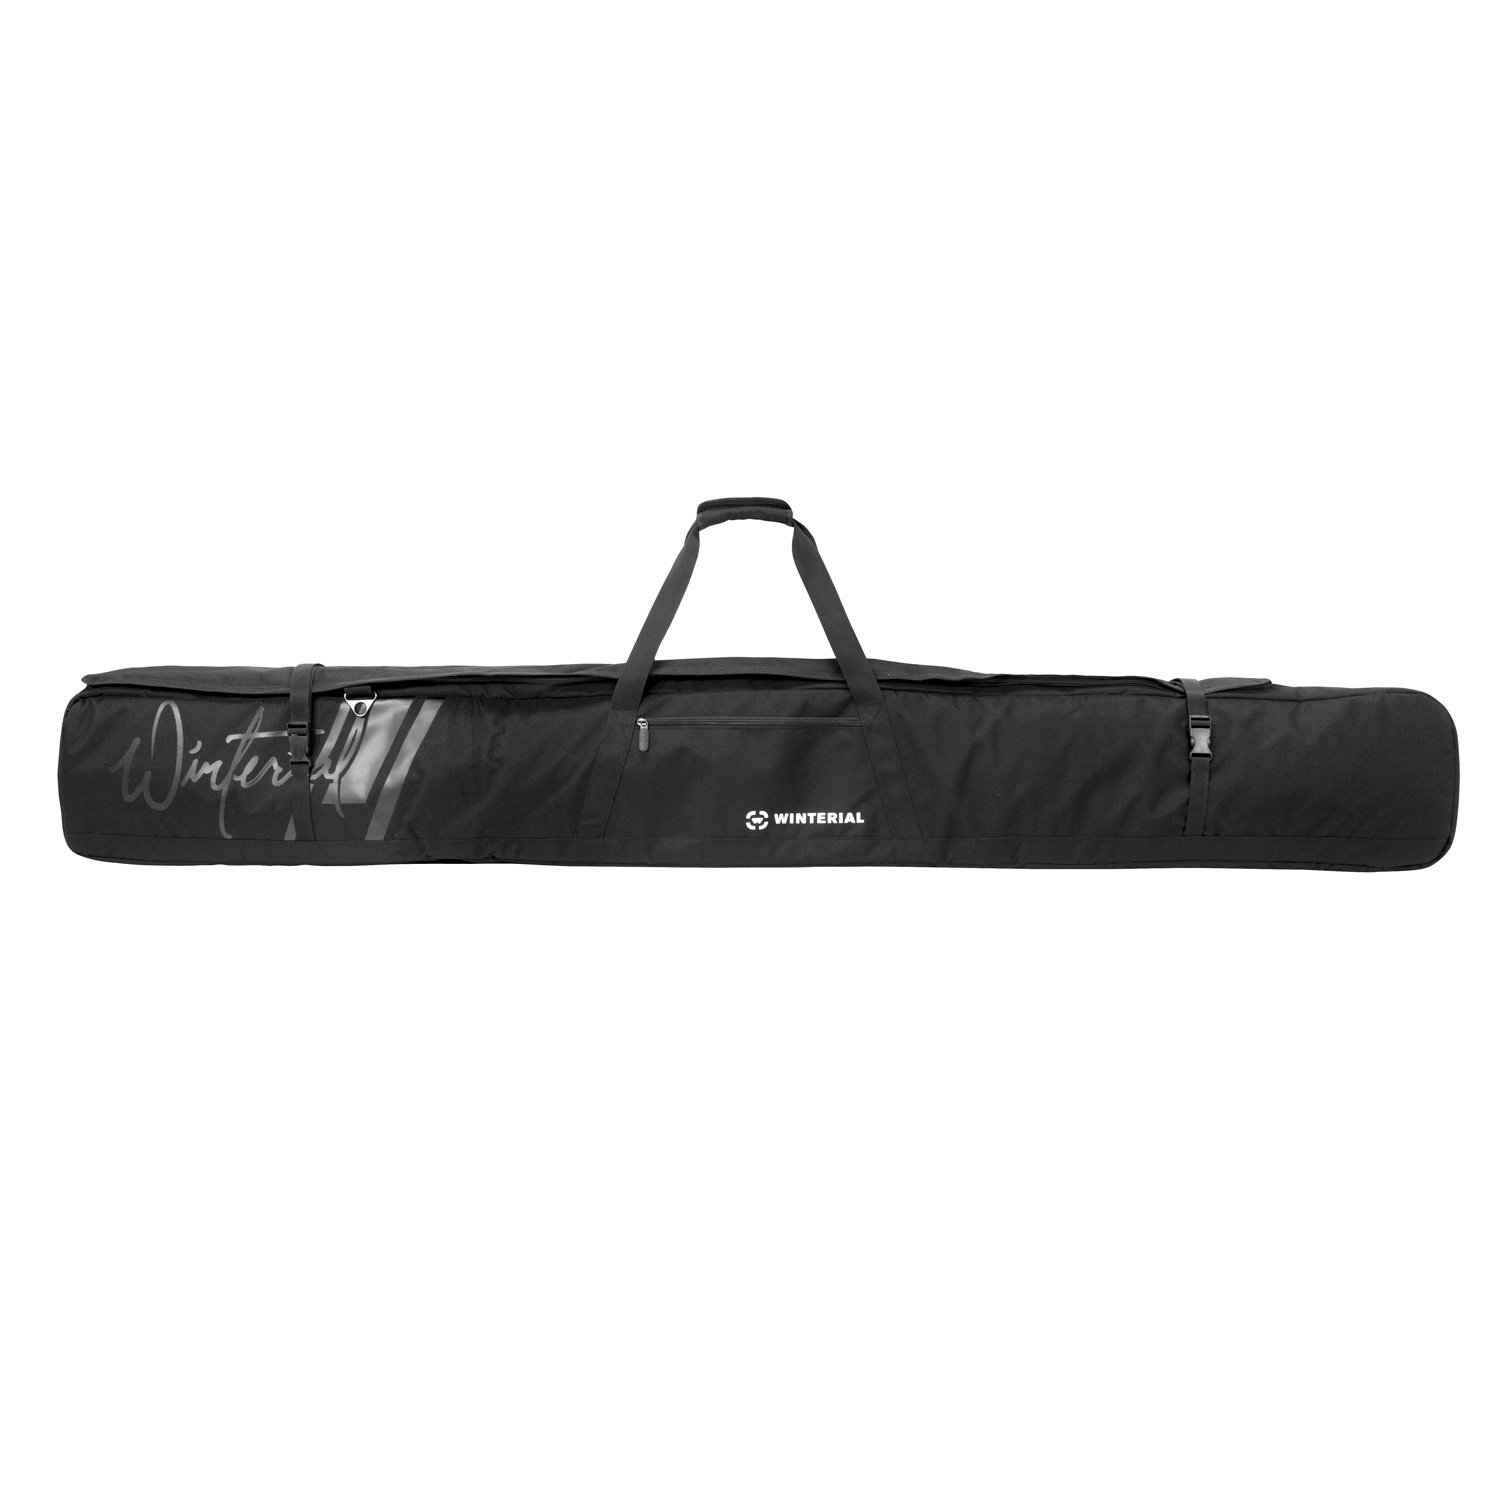 2018 Winterial Rolling Ski Bag, Travel, Winter Travel, Wheels, Protect Your Skis by Winterial (Image #2)